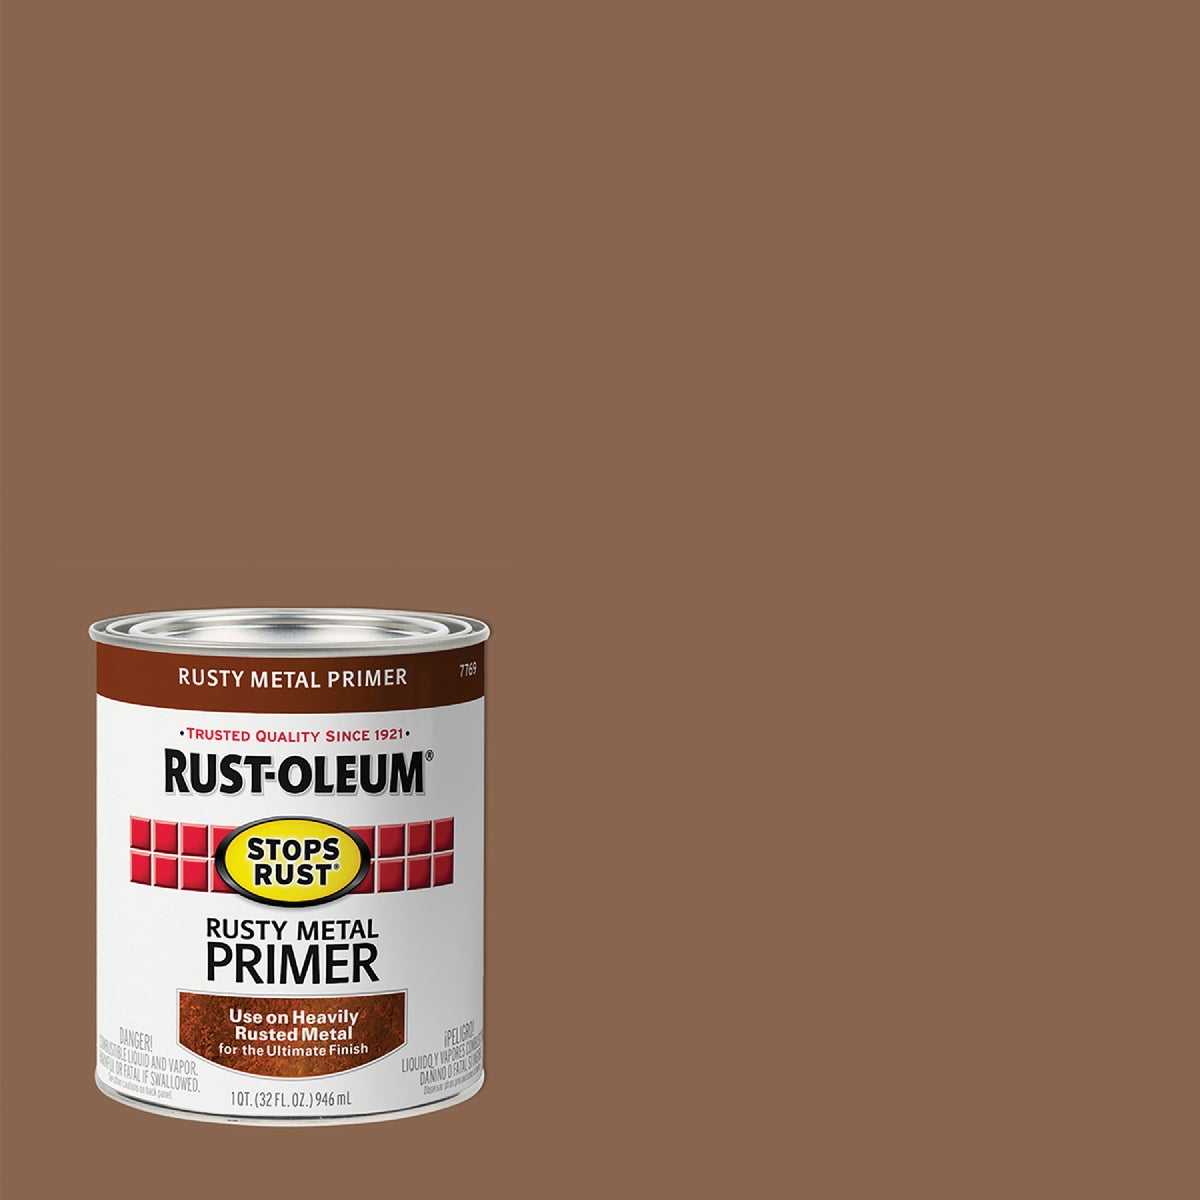 RED RUSTY METAL PRIMER - 7769-502 by Rustoleum